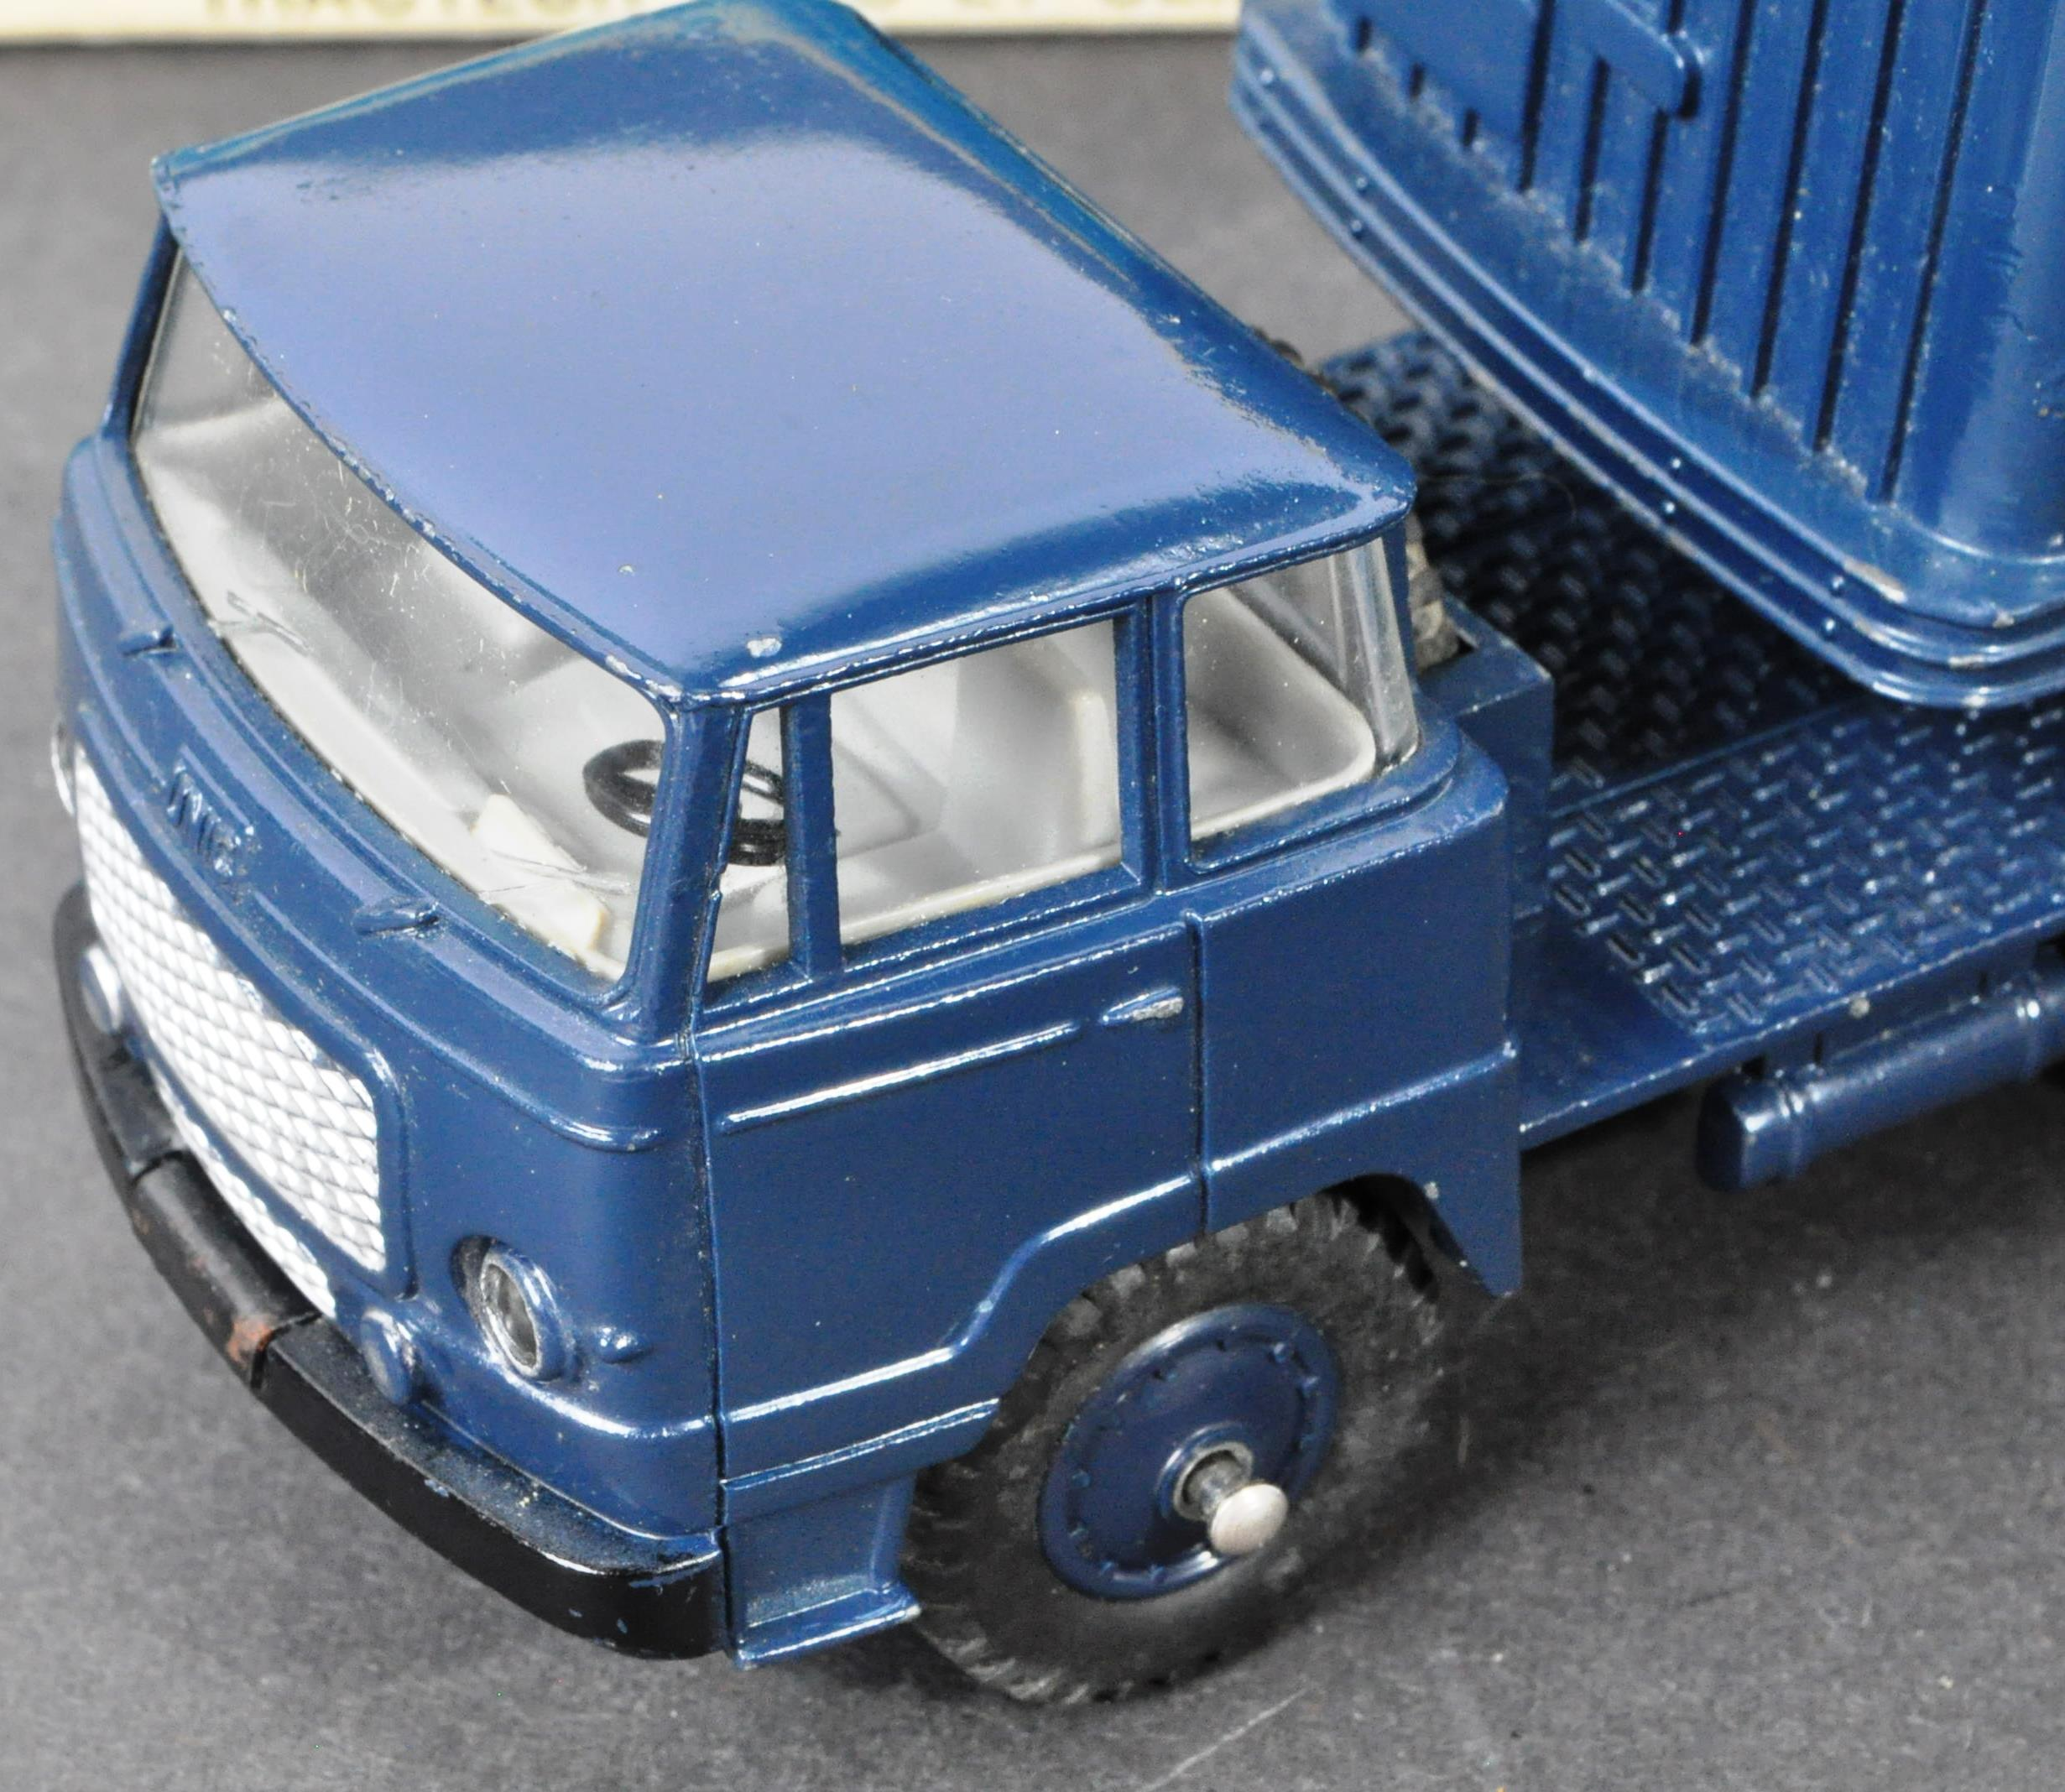 FRENCH DINKY TOYS - ORIGINAL BOXED VINTAGE DIECAST MODEL - Image 3 of 6